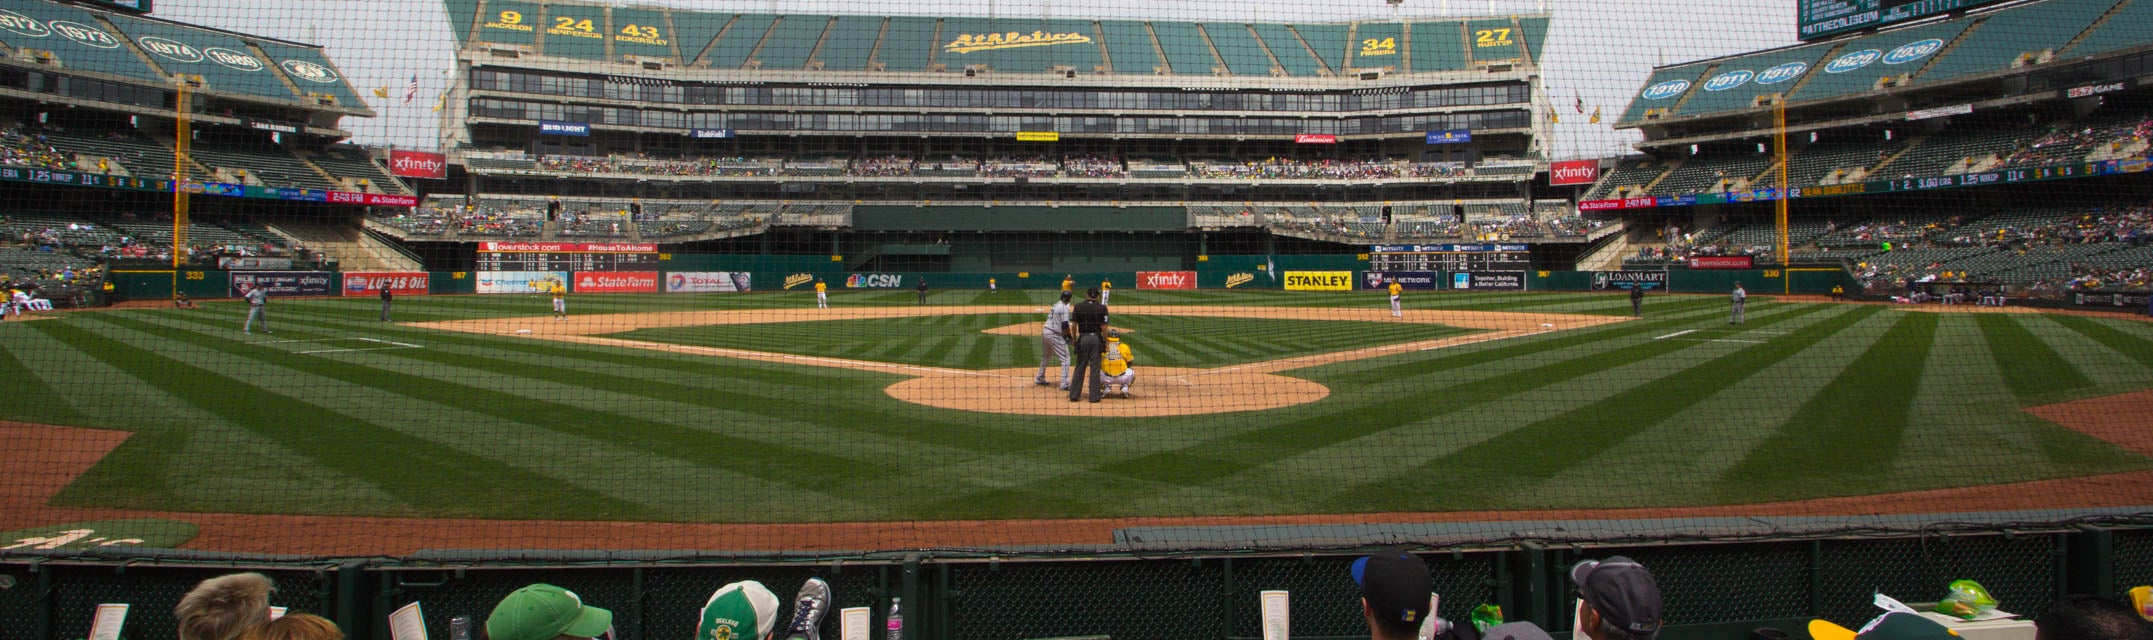 Seat view from Diamond Level